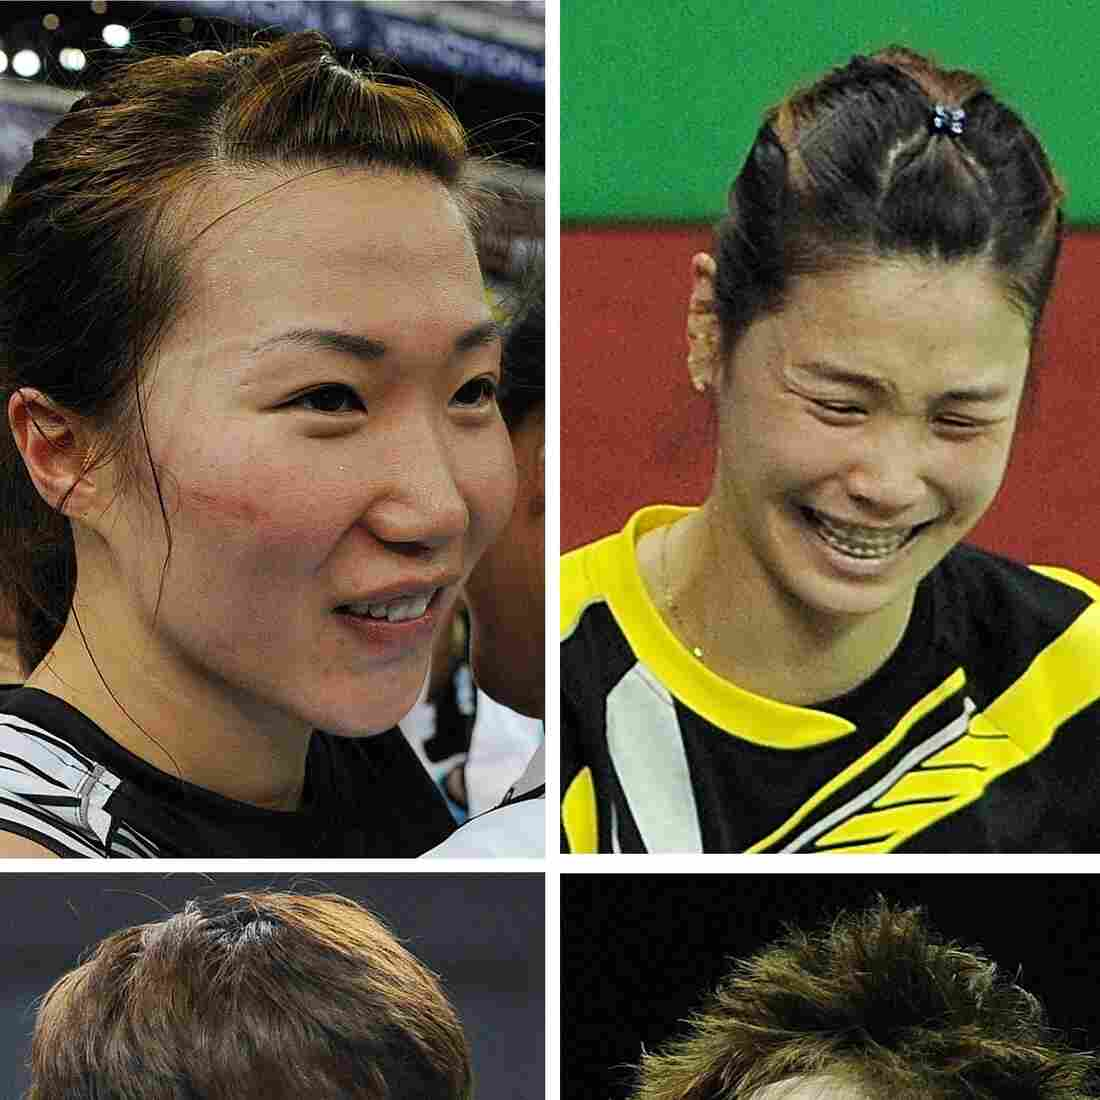 Is What The 'Badminton Eight' Did Really So Bad?